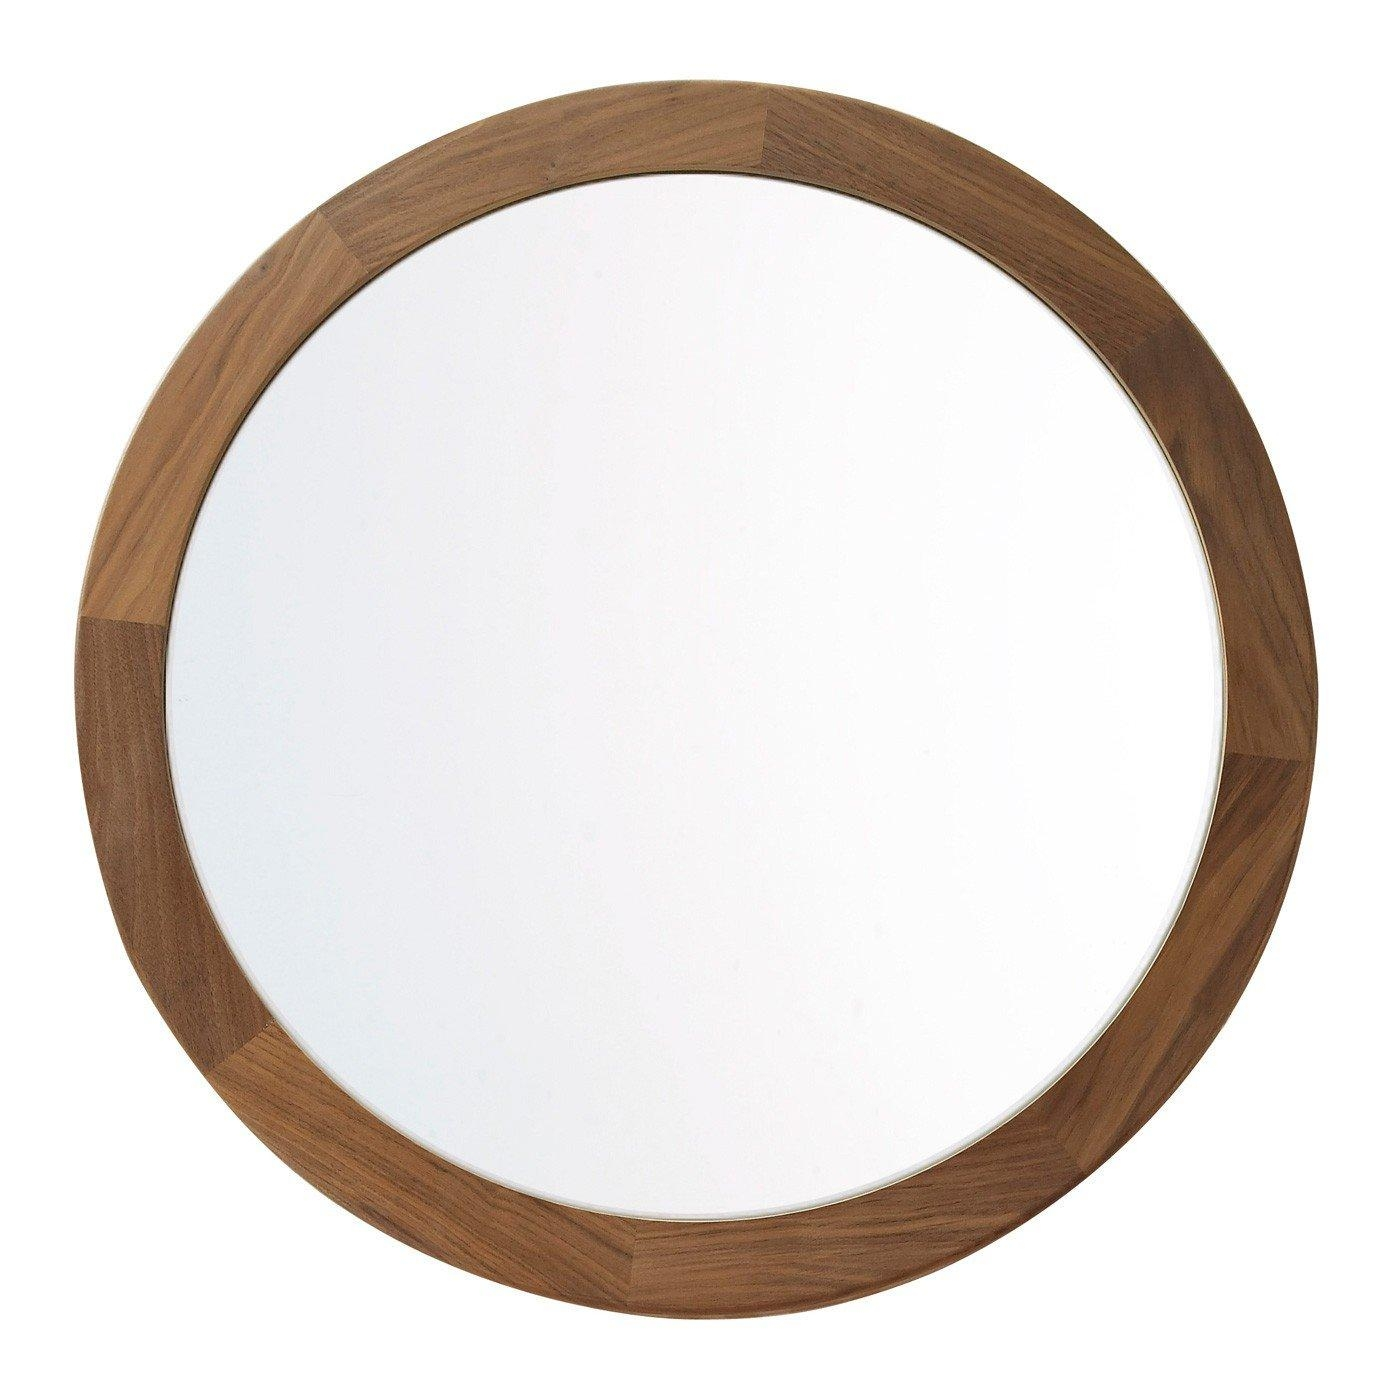 Modern Contemporary Mirrors | Heal's Inside Designer Round Mirrors (Image 15 of 20)